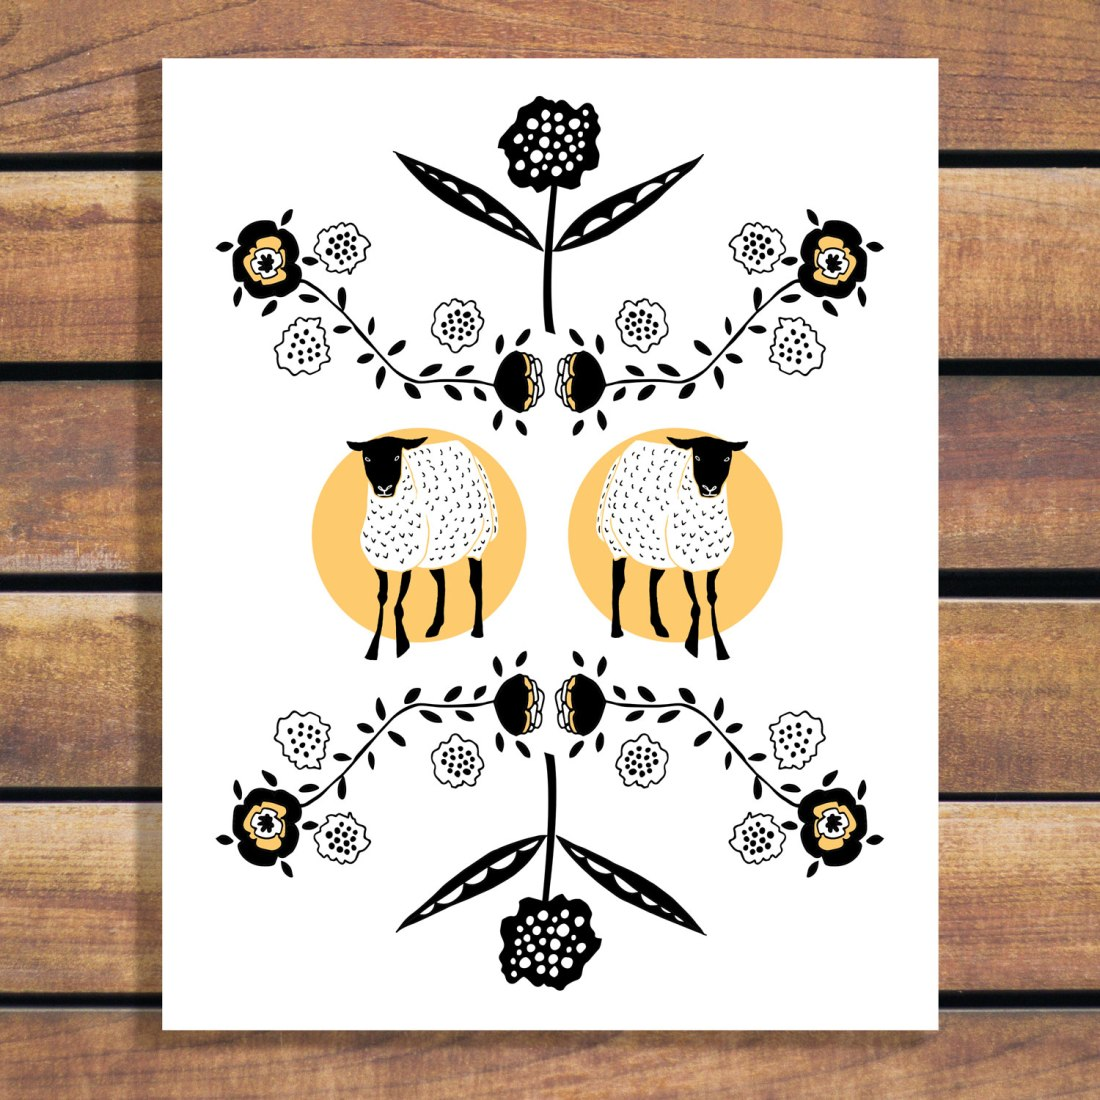 Twins! Lamb and floral illustration art poster for your baby room or kid's bedroom